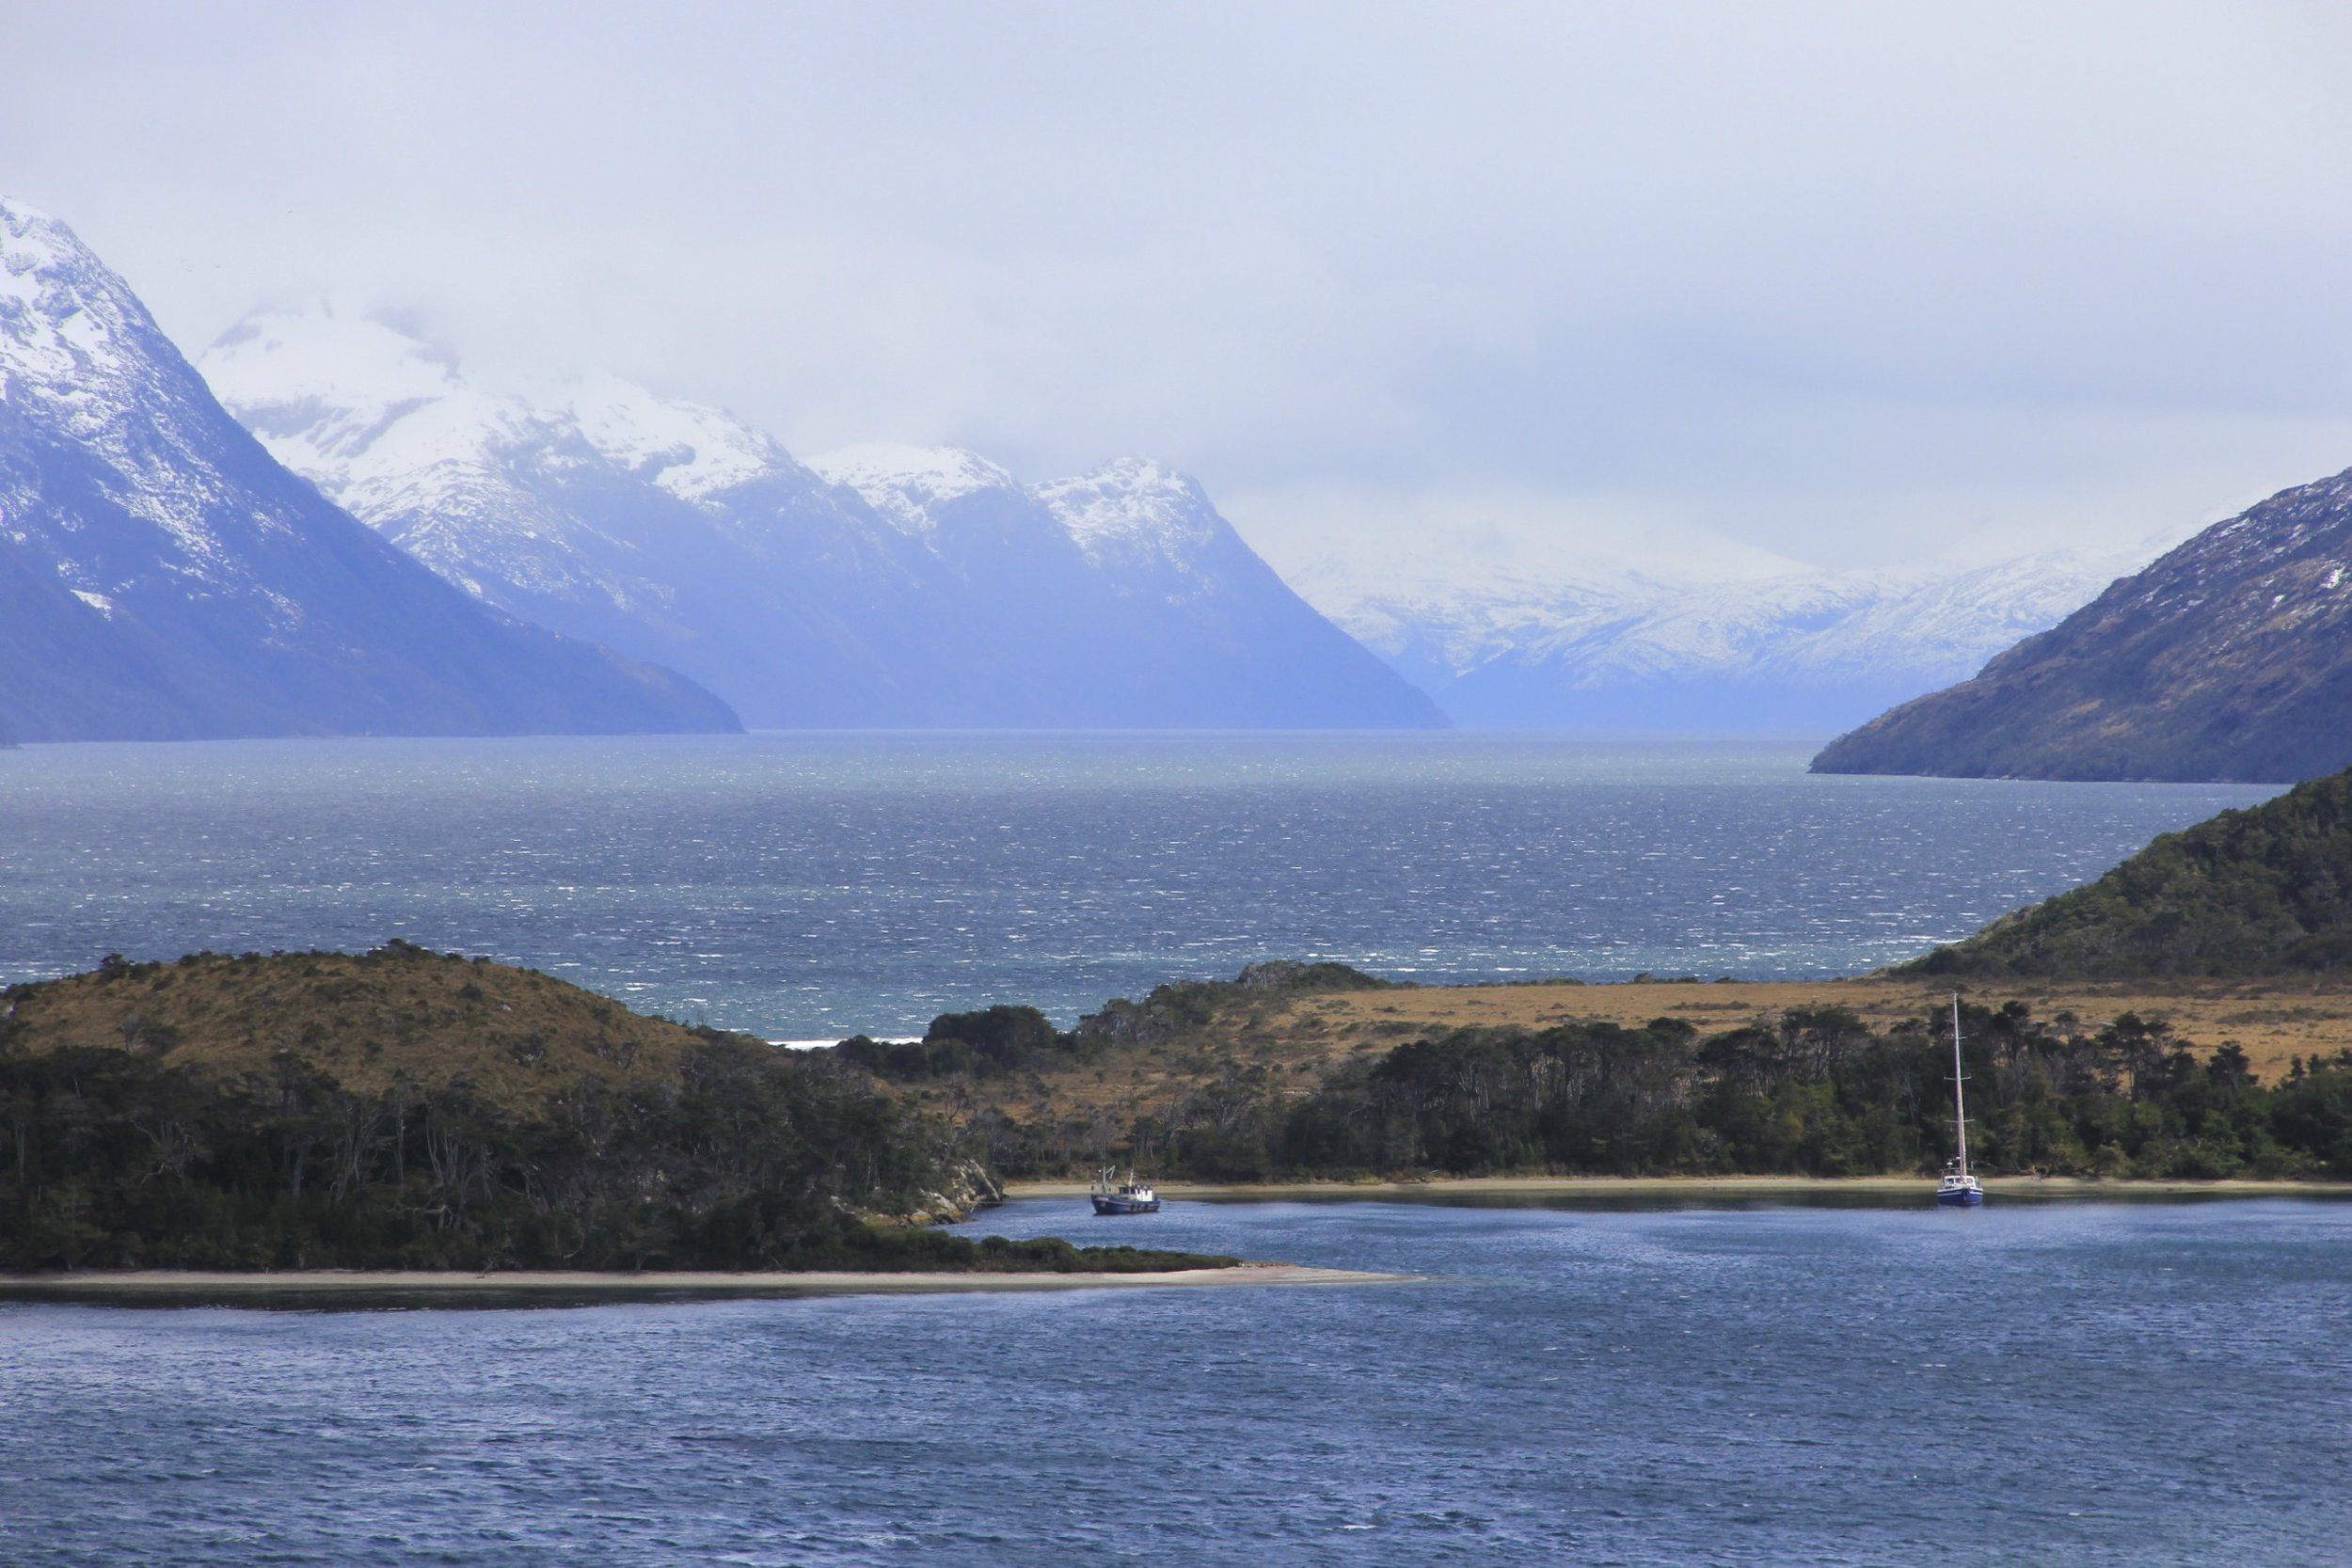 Beagle Channel and the southern Patagonia